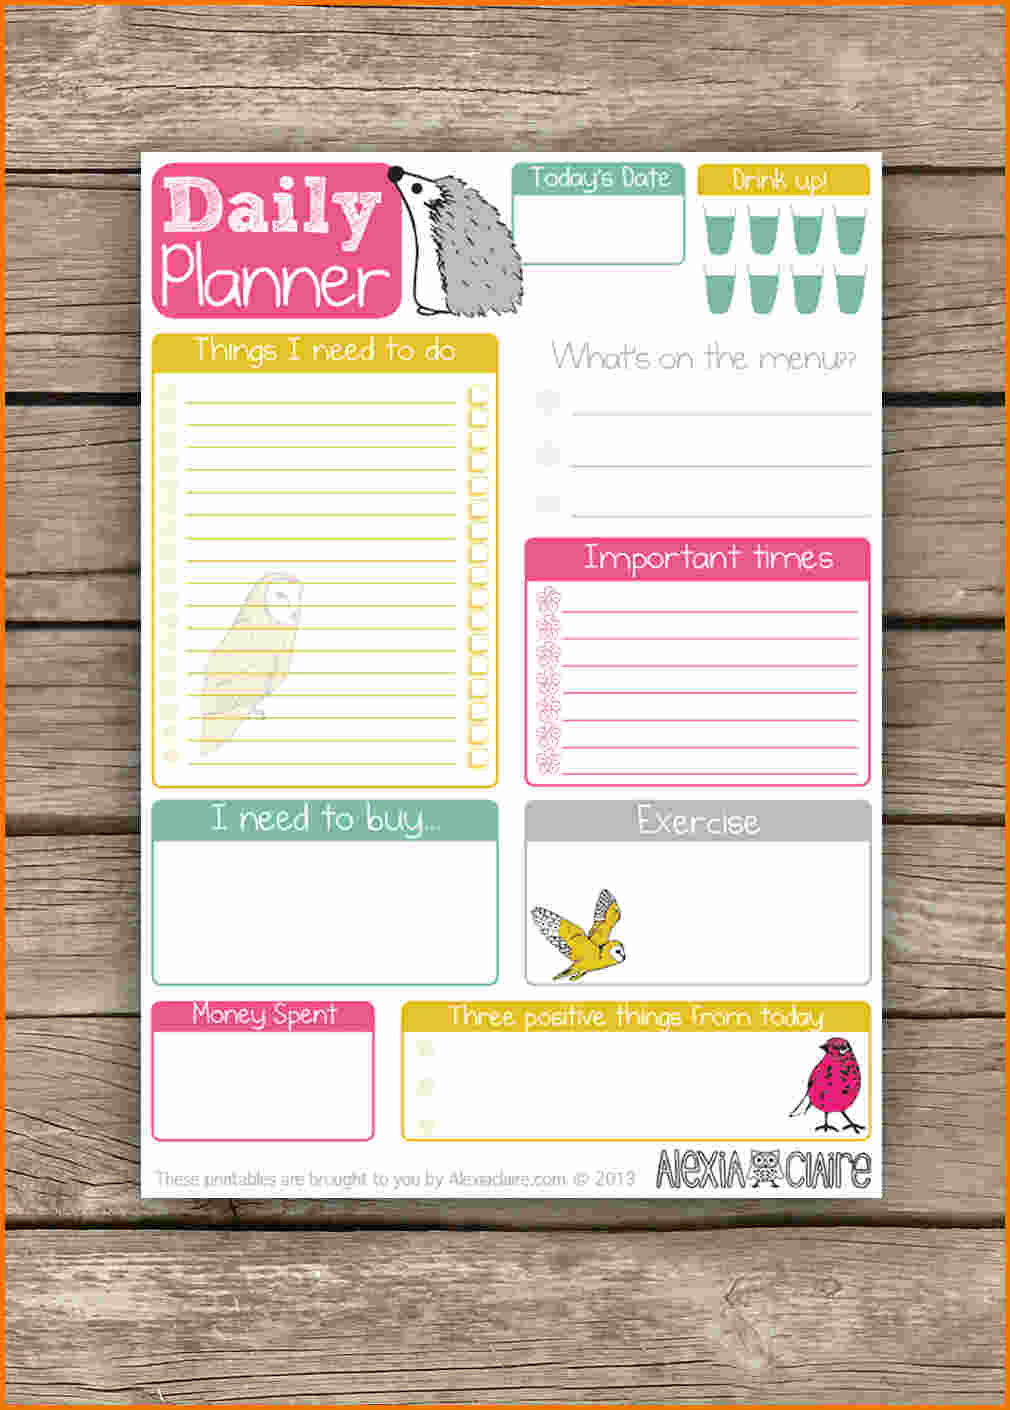 Daily Planner Printable - Daily Agenda Planner